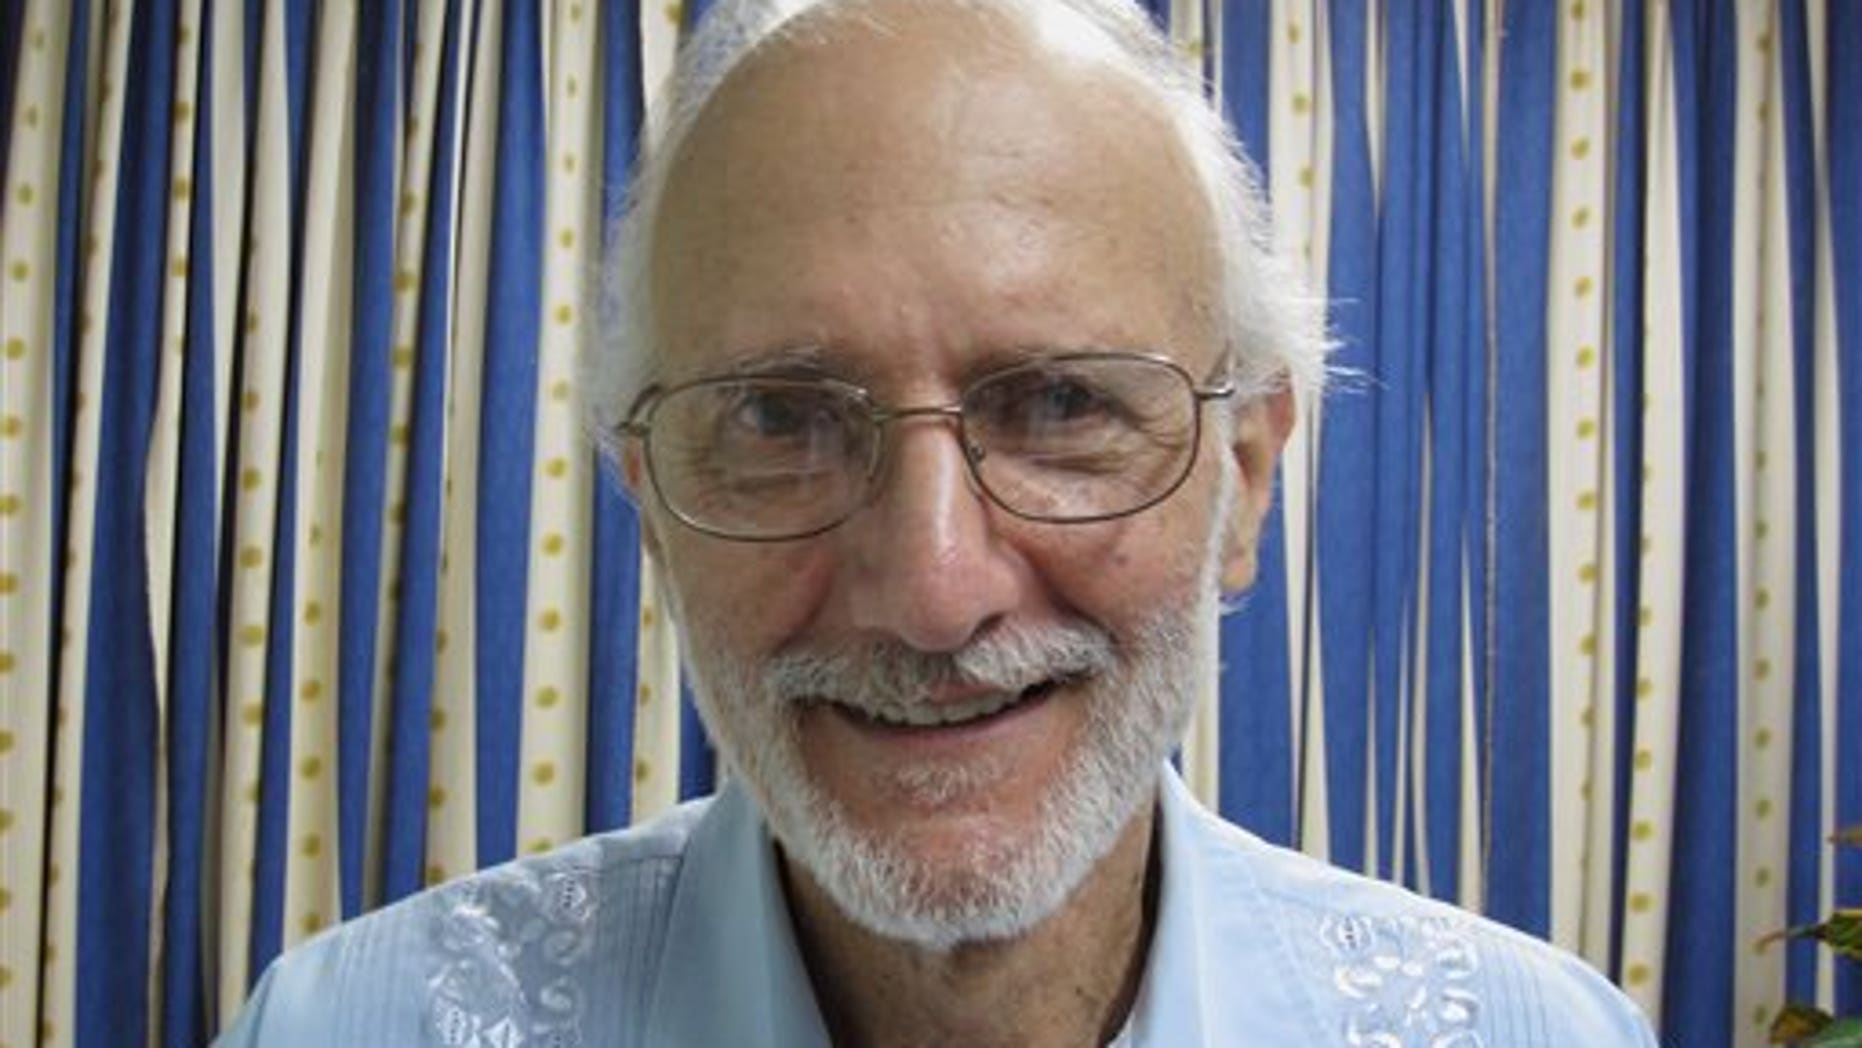 In this file photo provided by U.S. lawyer James L. Berenthal, jailed American Alan Gross poses for a photo during a visit by Rabbi Elie Abadie and Berenthal at Finlay military hospital in Havana, Cuba.